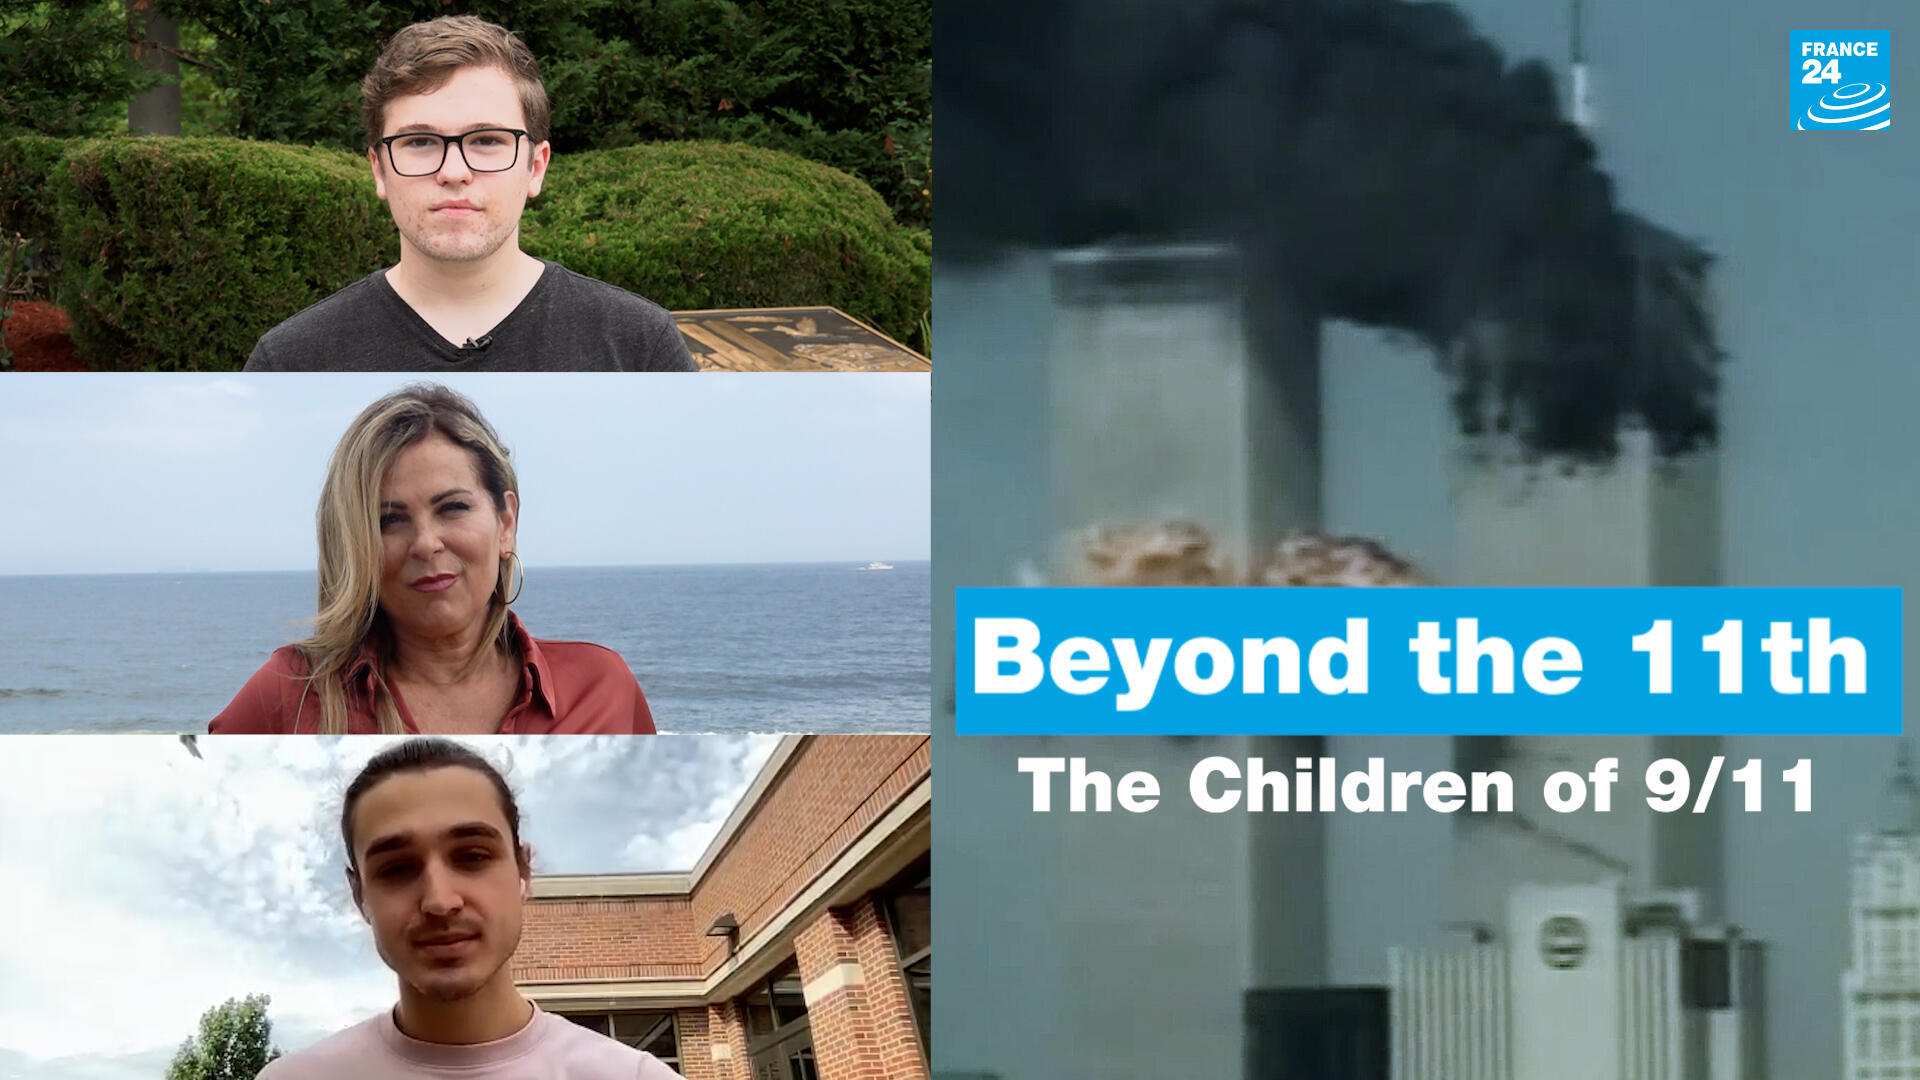 Beyond the 11h: The children of 9/11